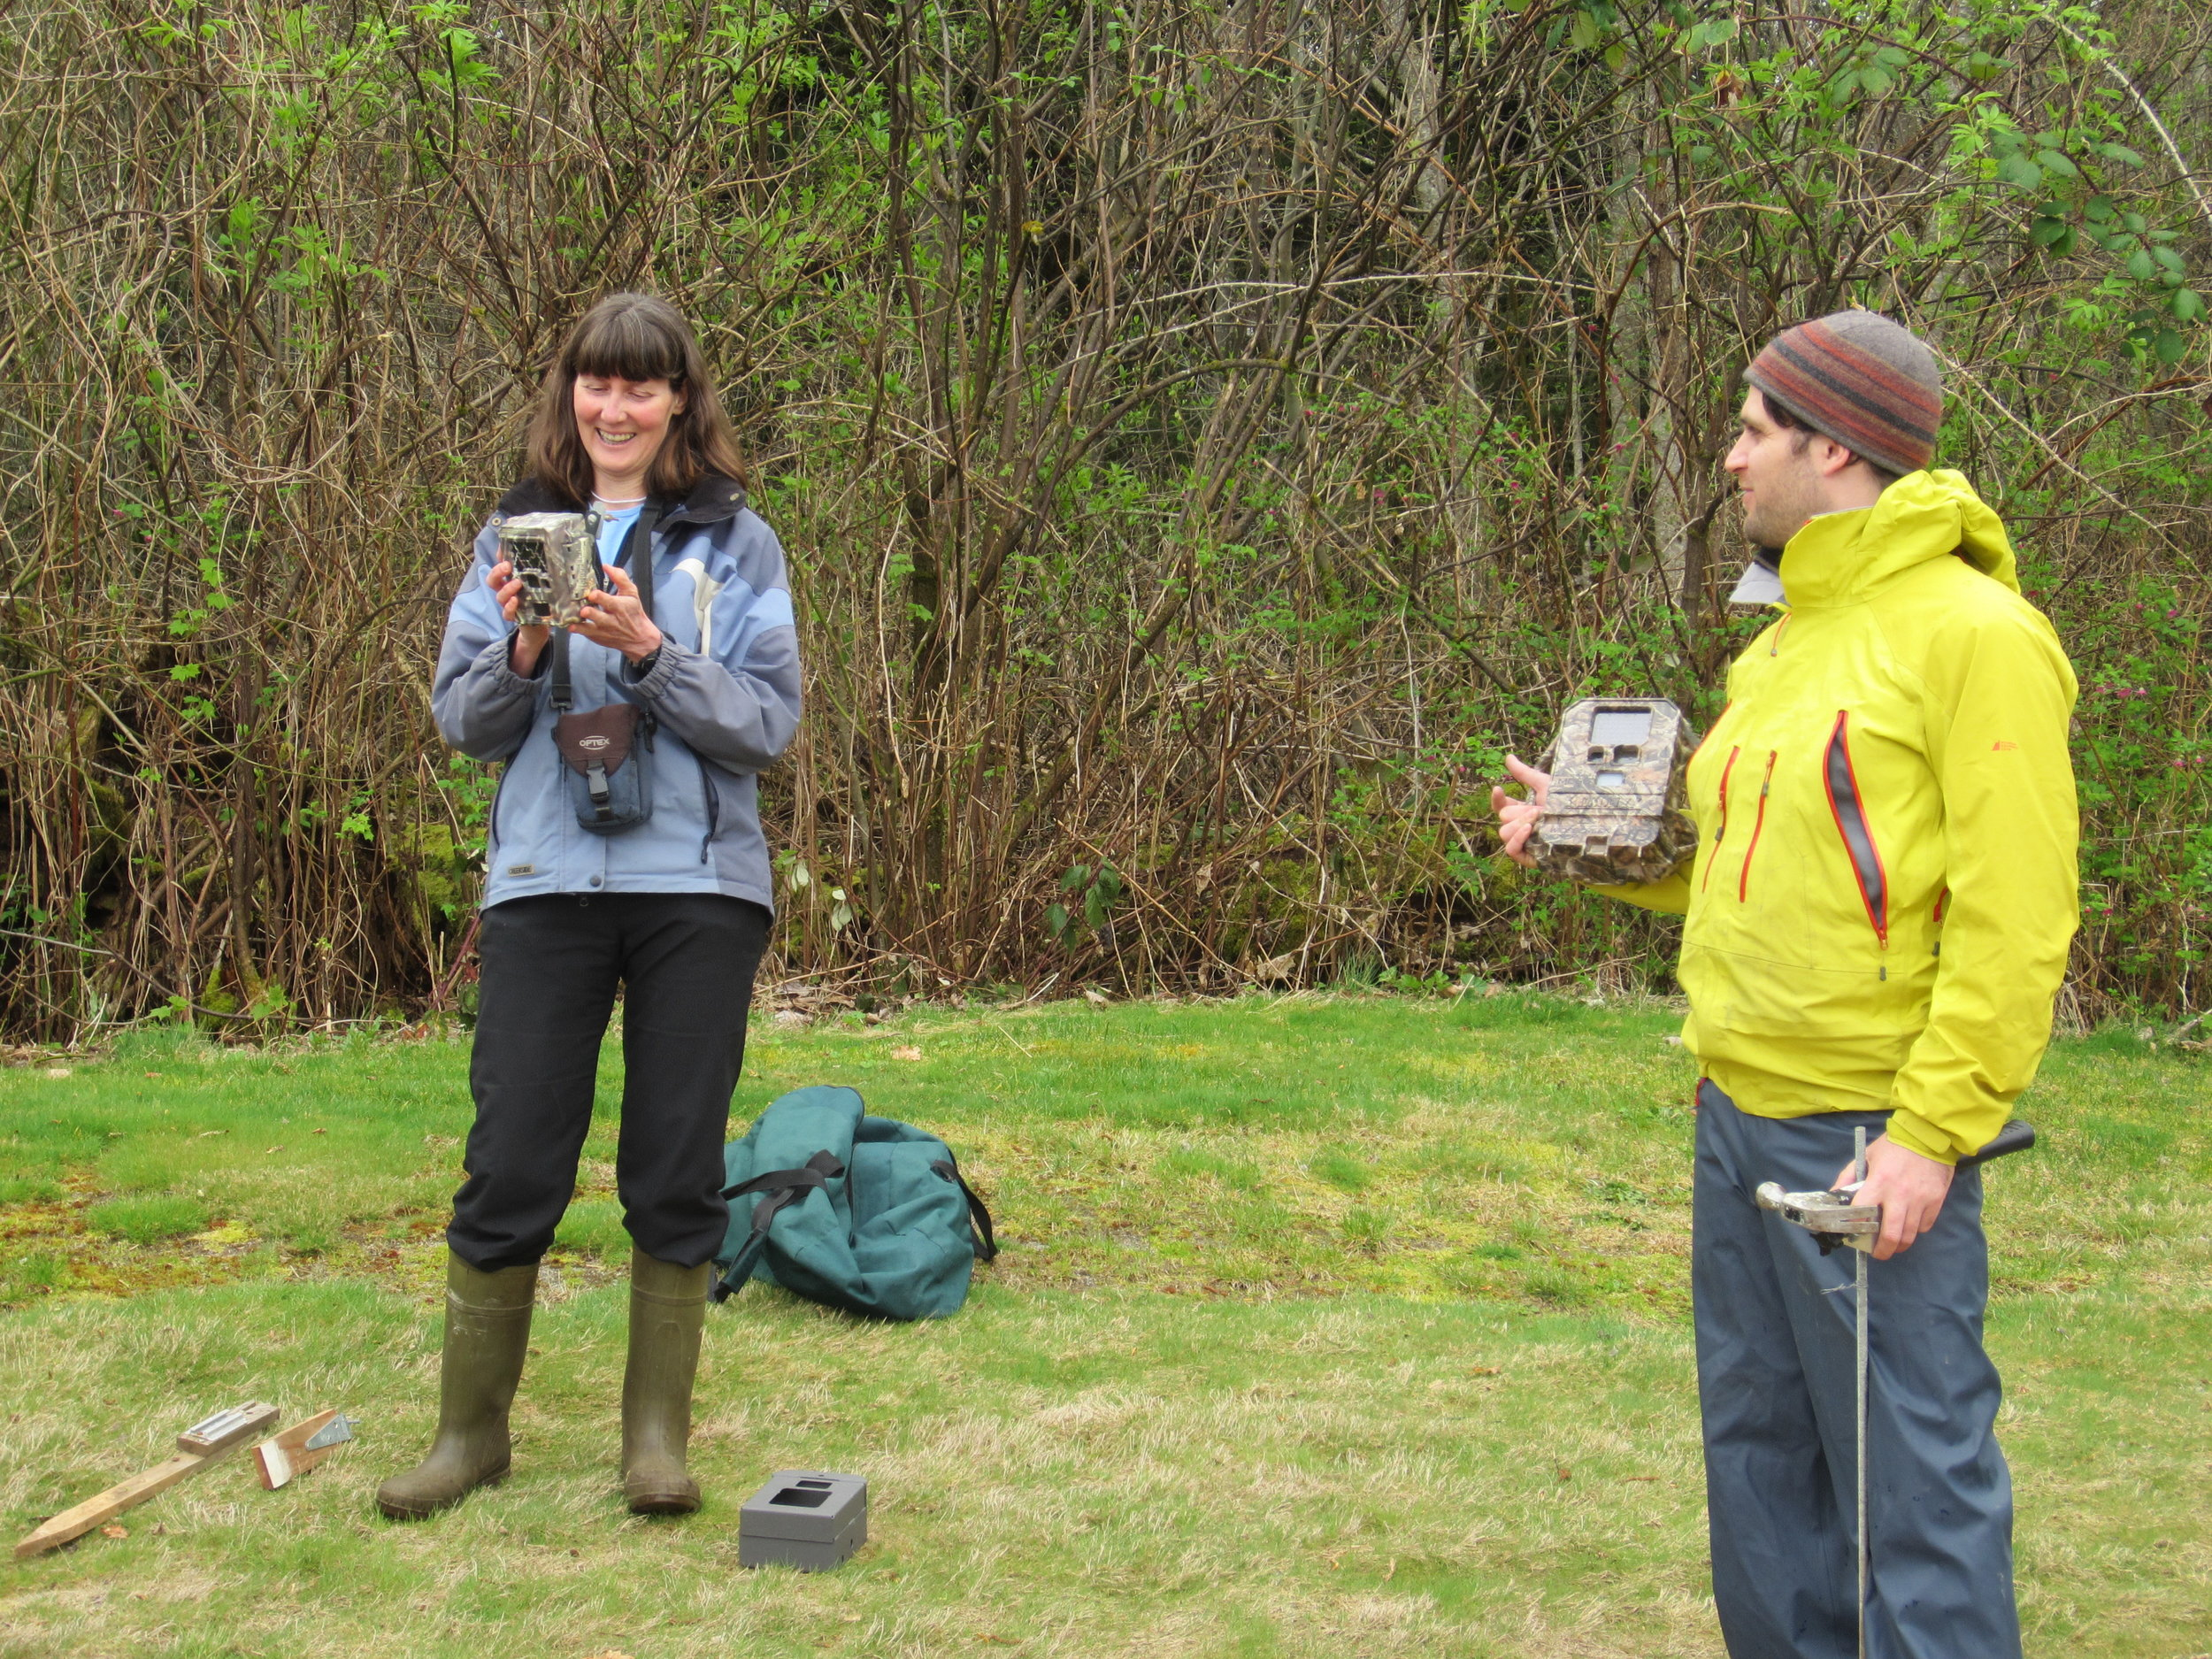 Barb Beasley and Josh Malt explaining using remote cameras to document amphibians and reptiles.(Photo by Betsy Howell)